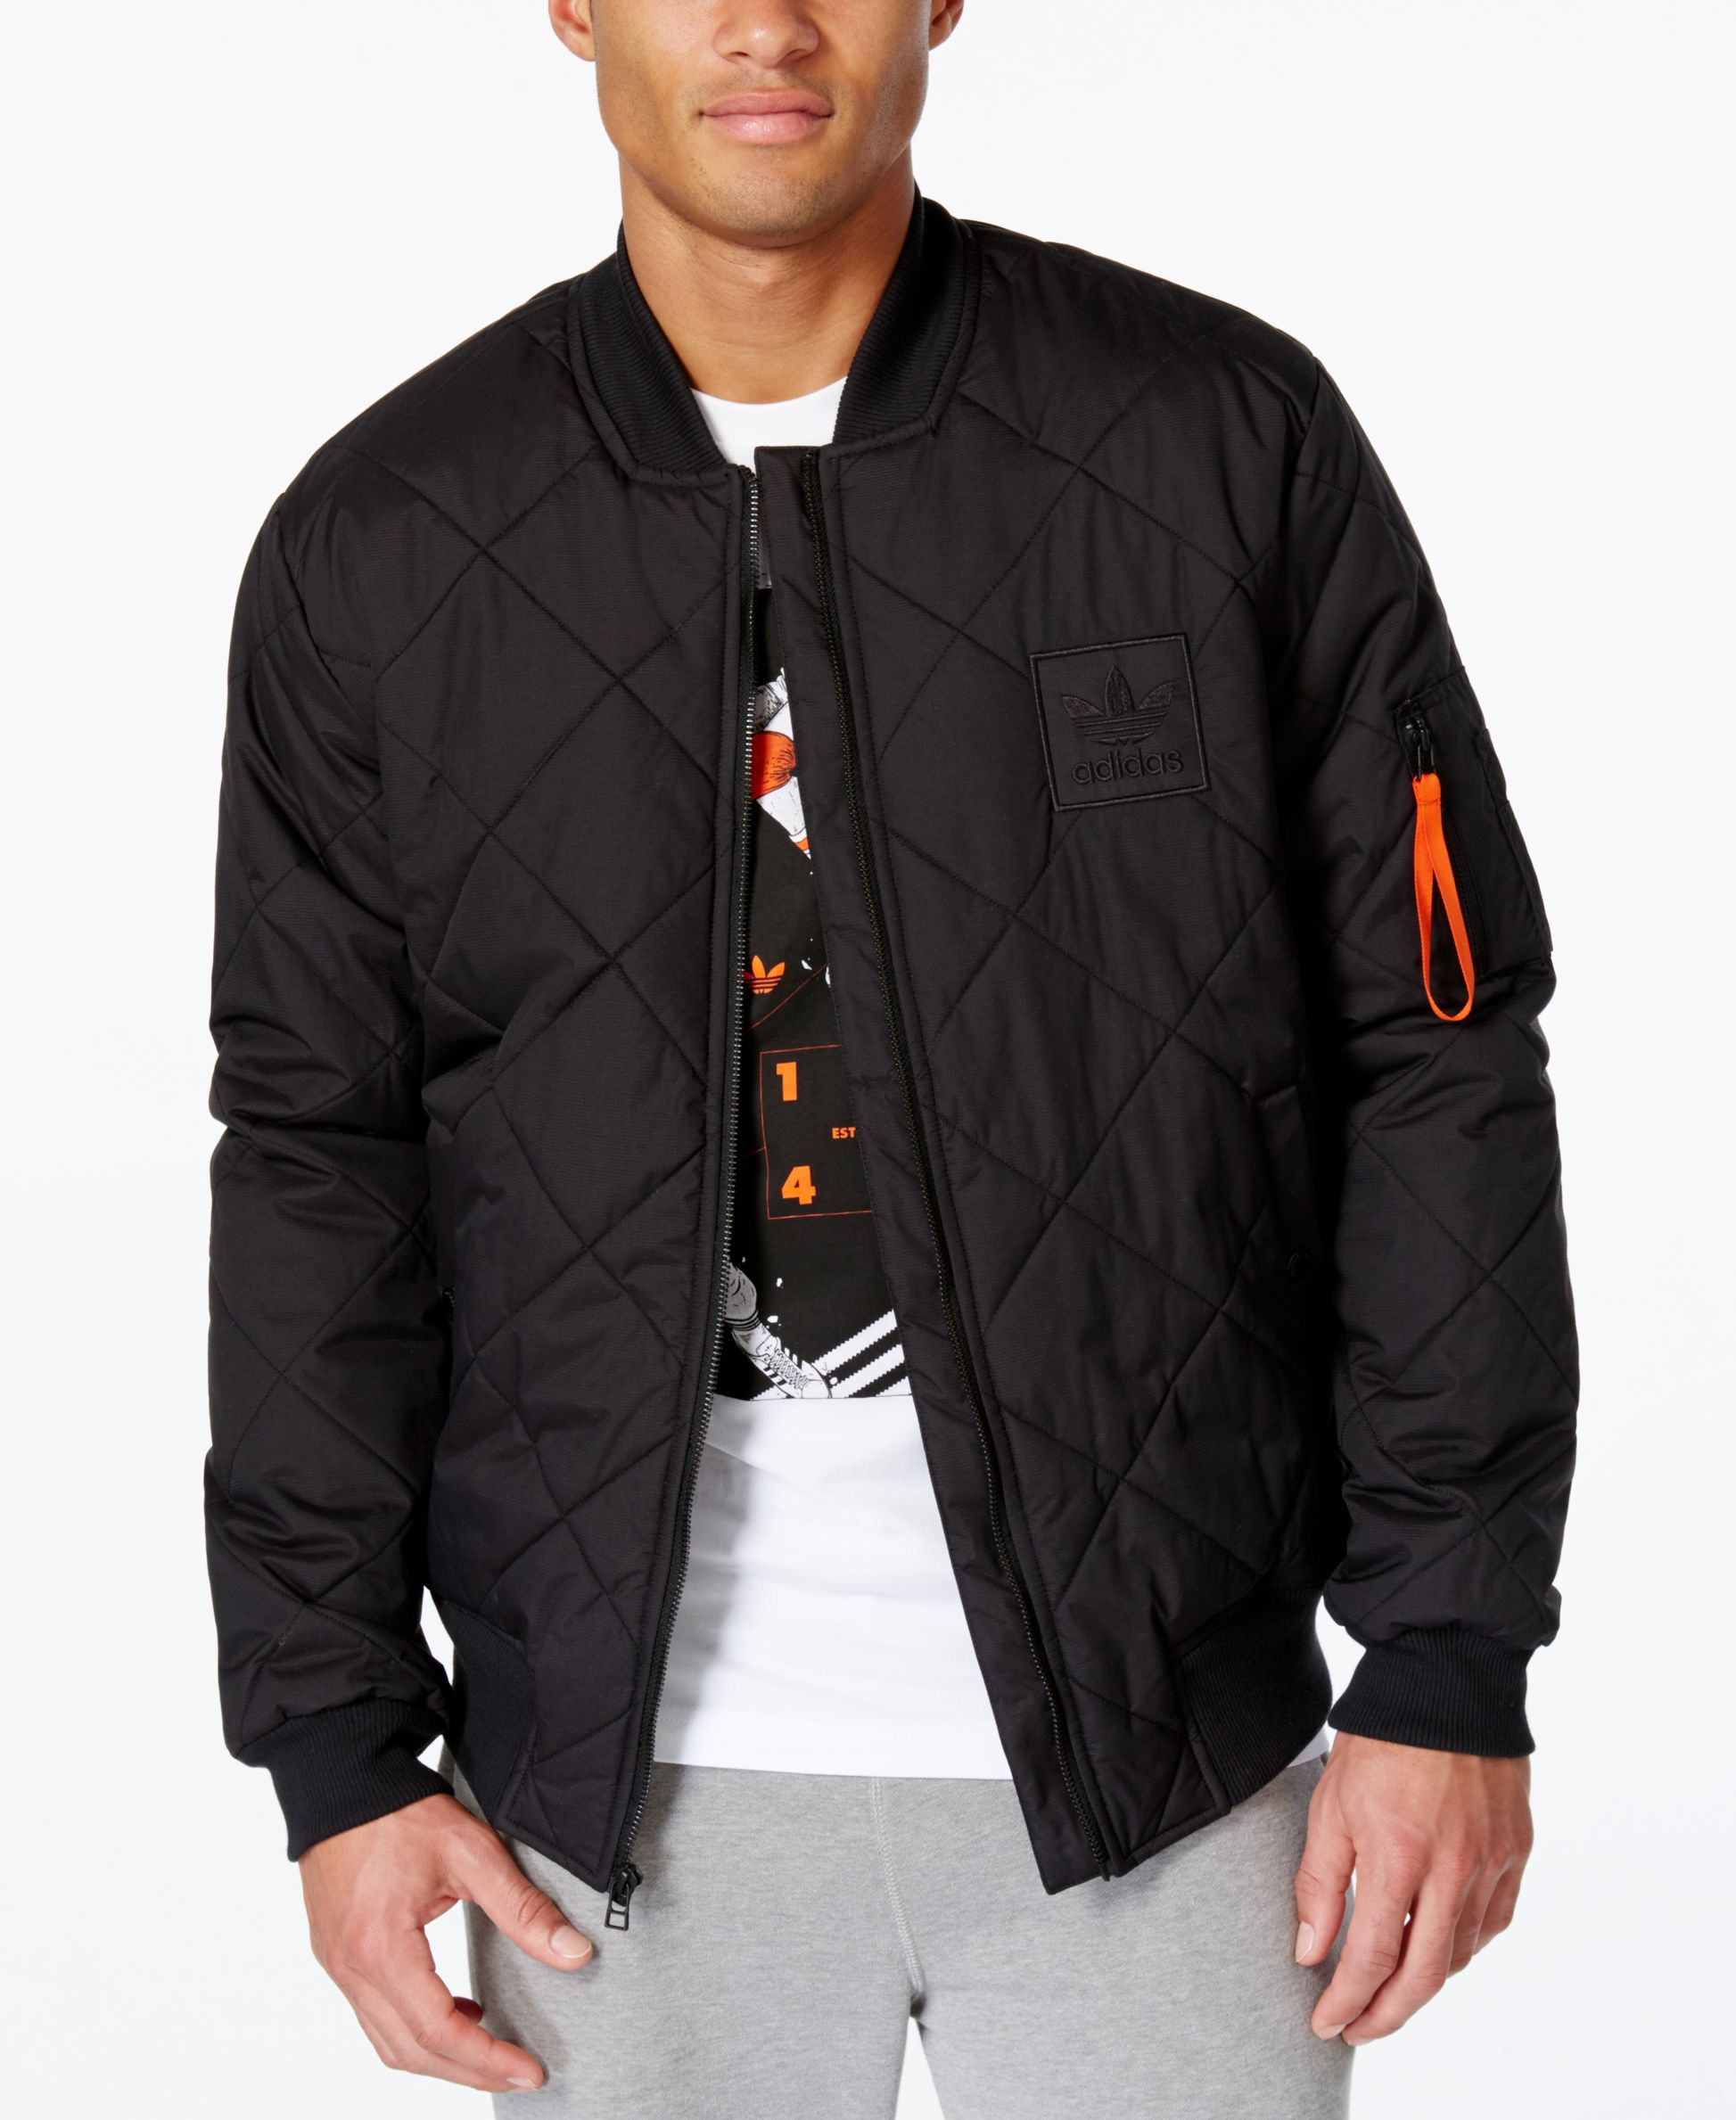 adidas fashion jacket